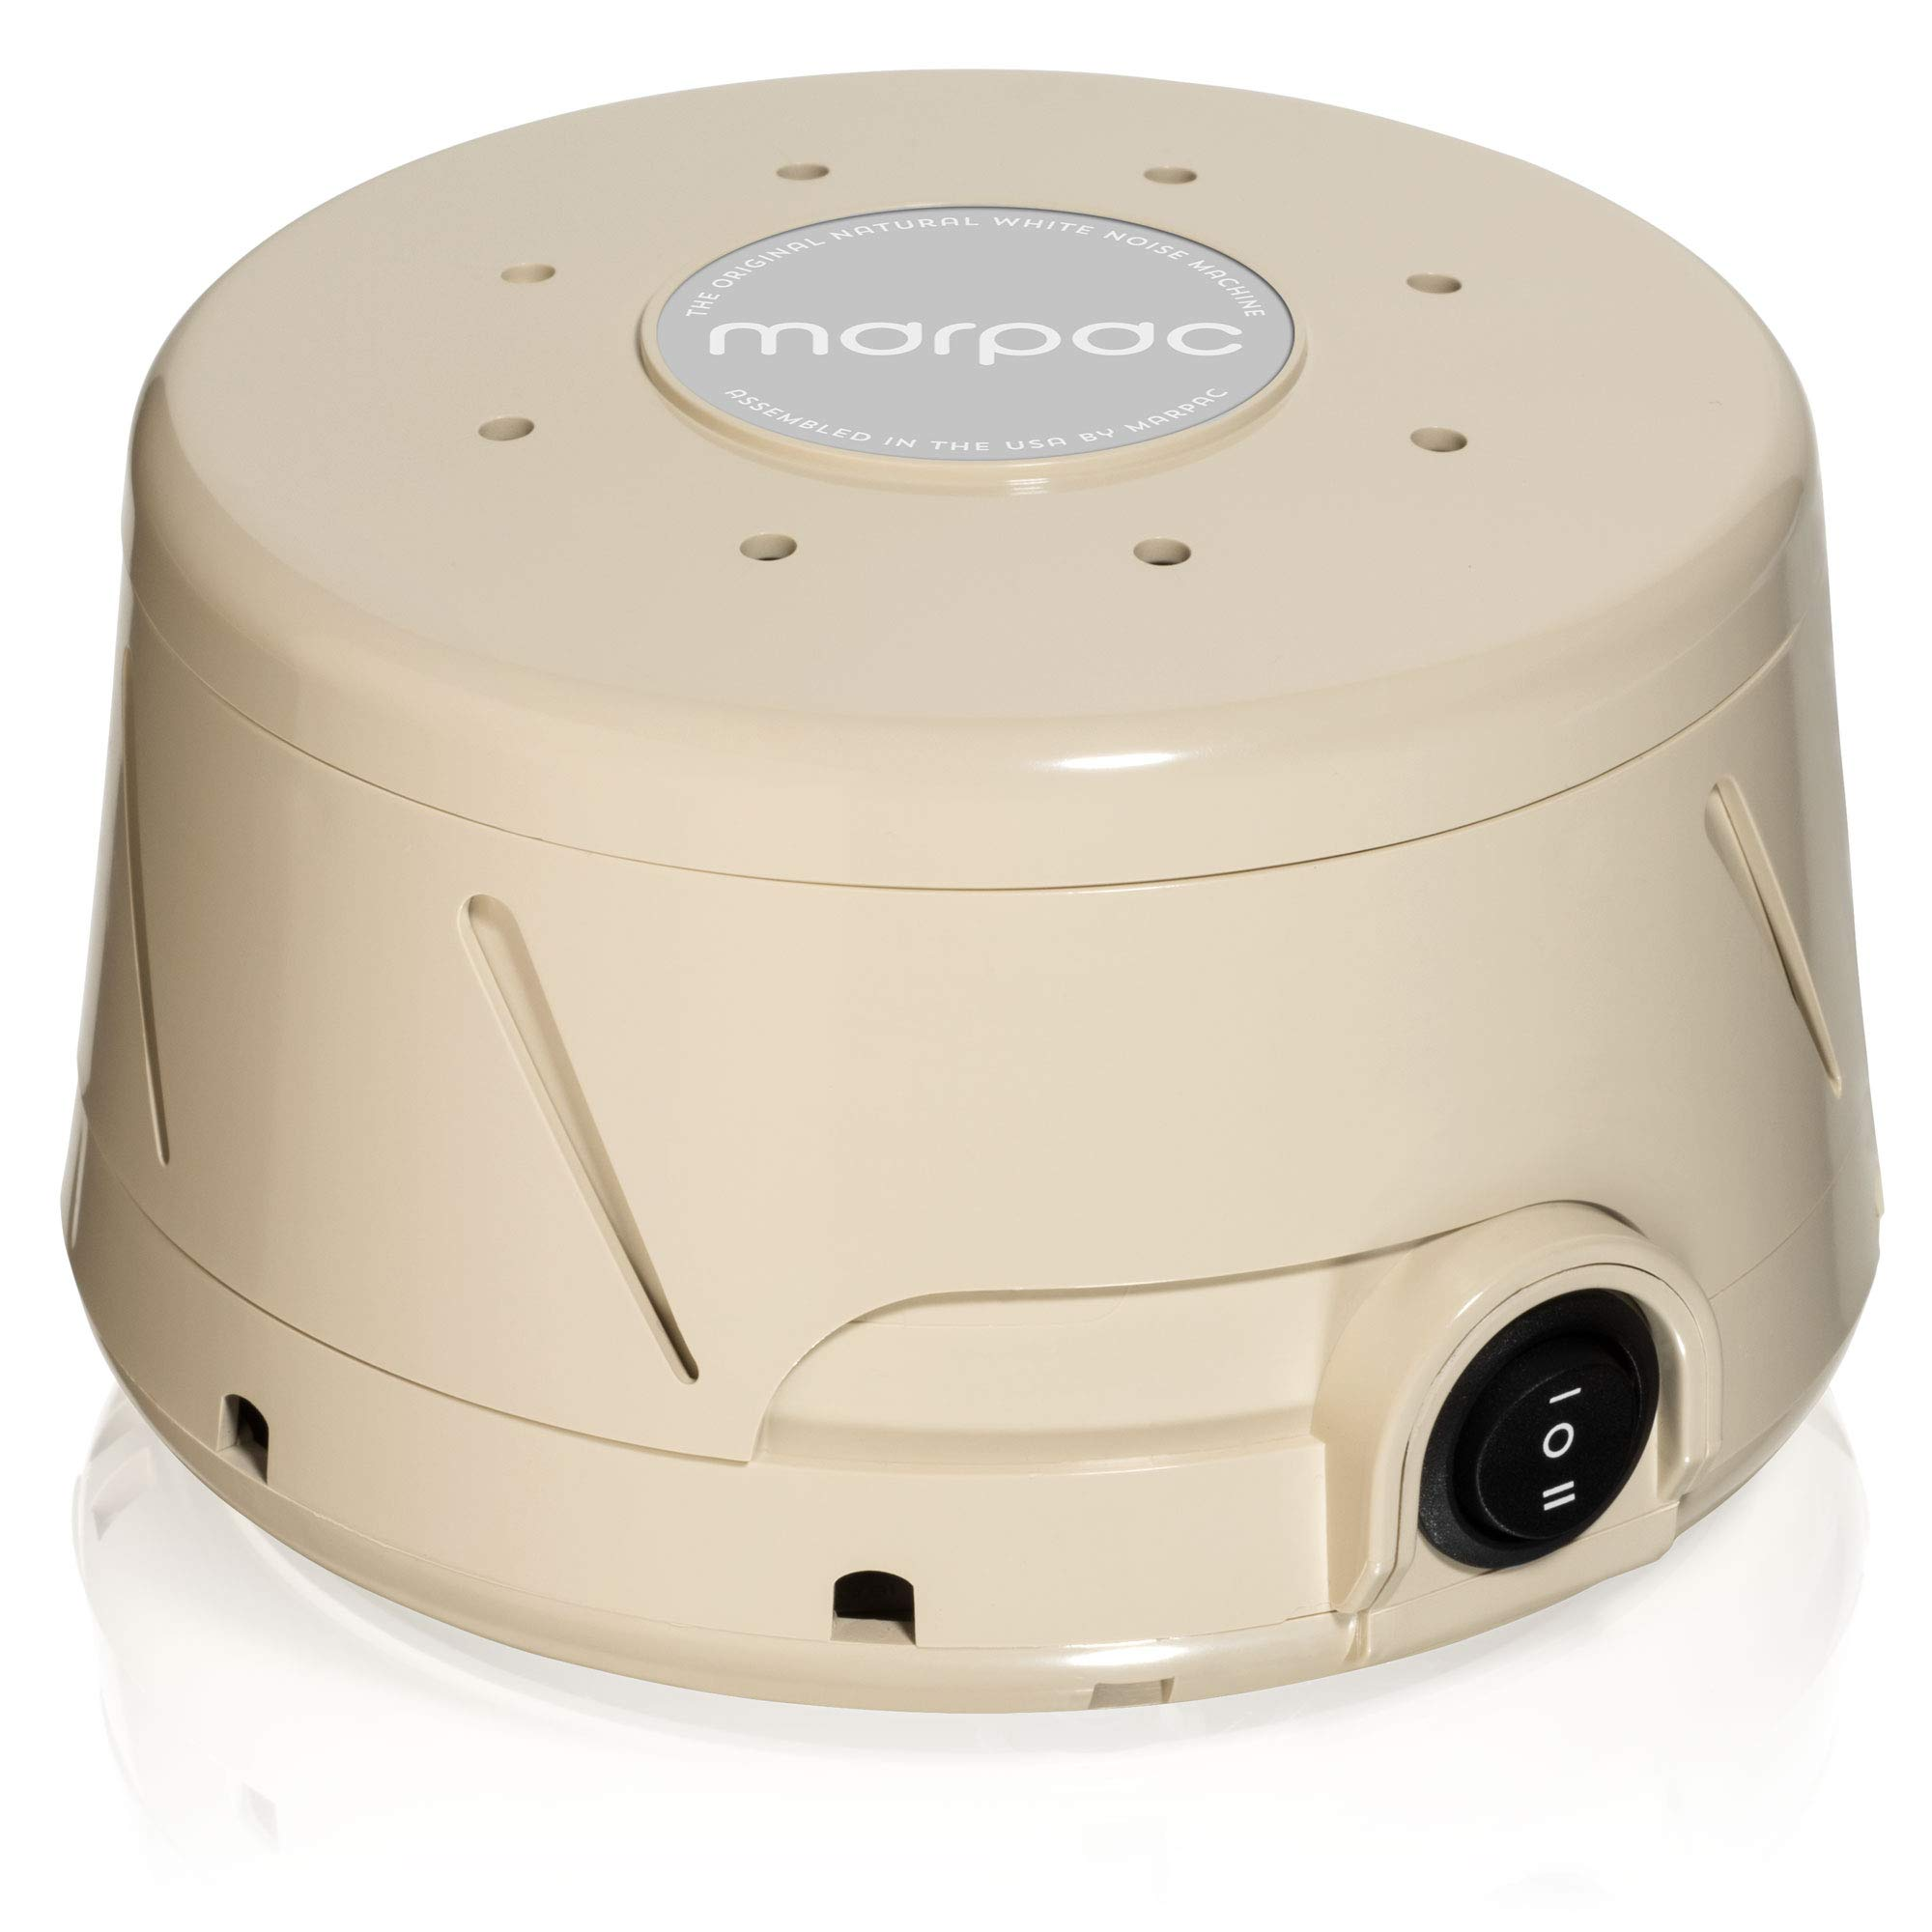 Marpac Dohm Classic White Noise Sound Machine with Soothing Sounds from A Real Fan. Helps Cancel Noise While You Sleep and Perfect for Adults and Children (Tan, Dohm)